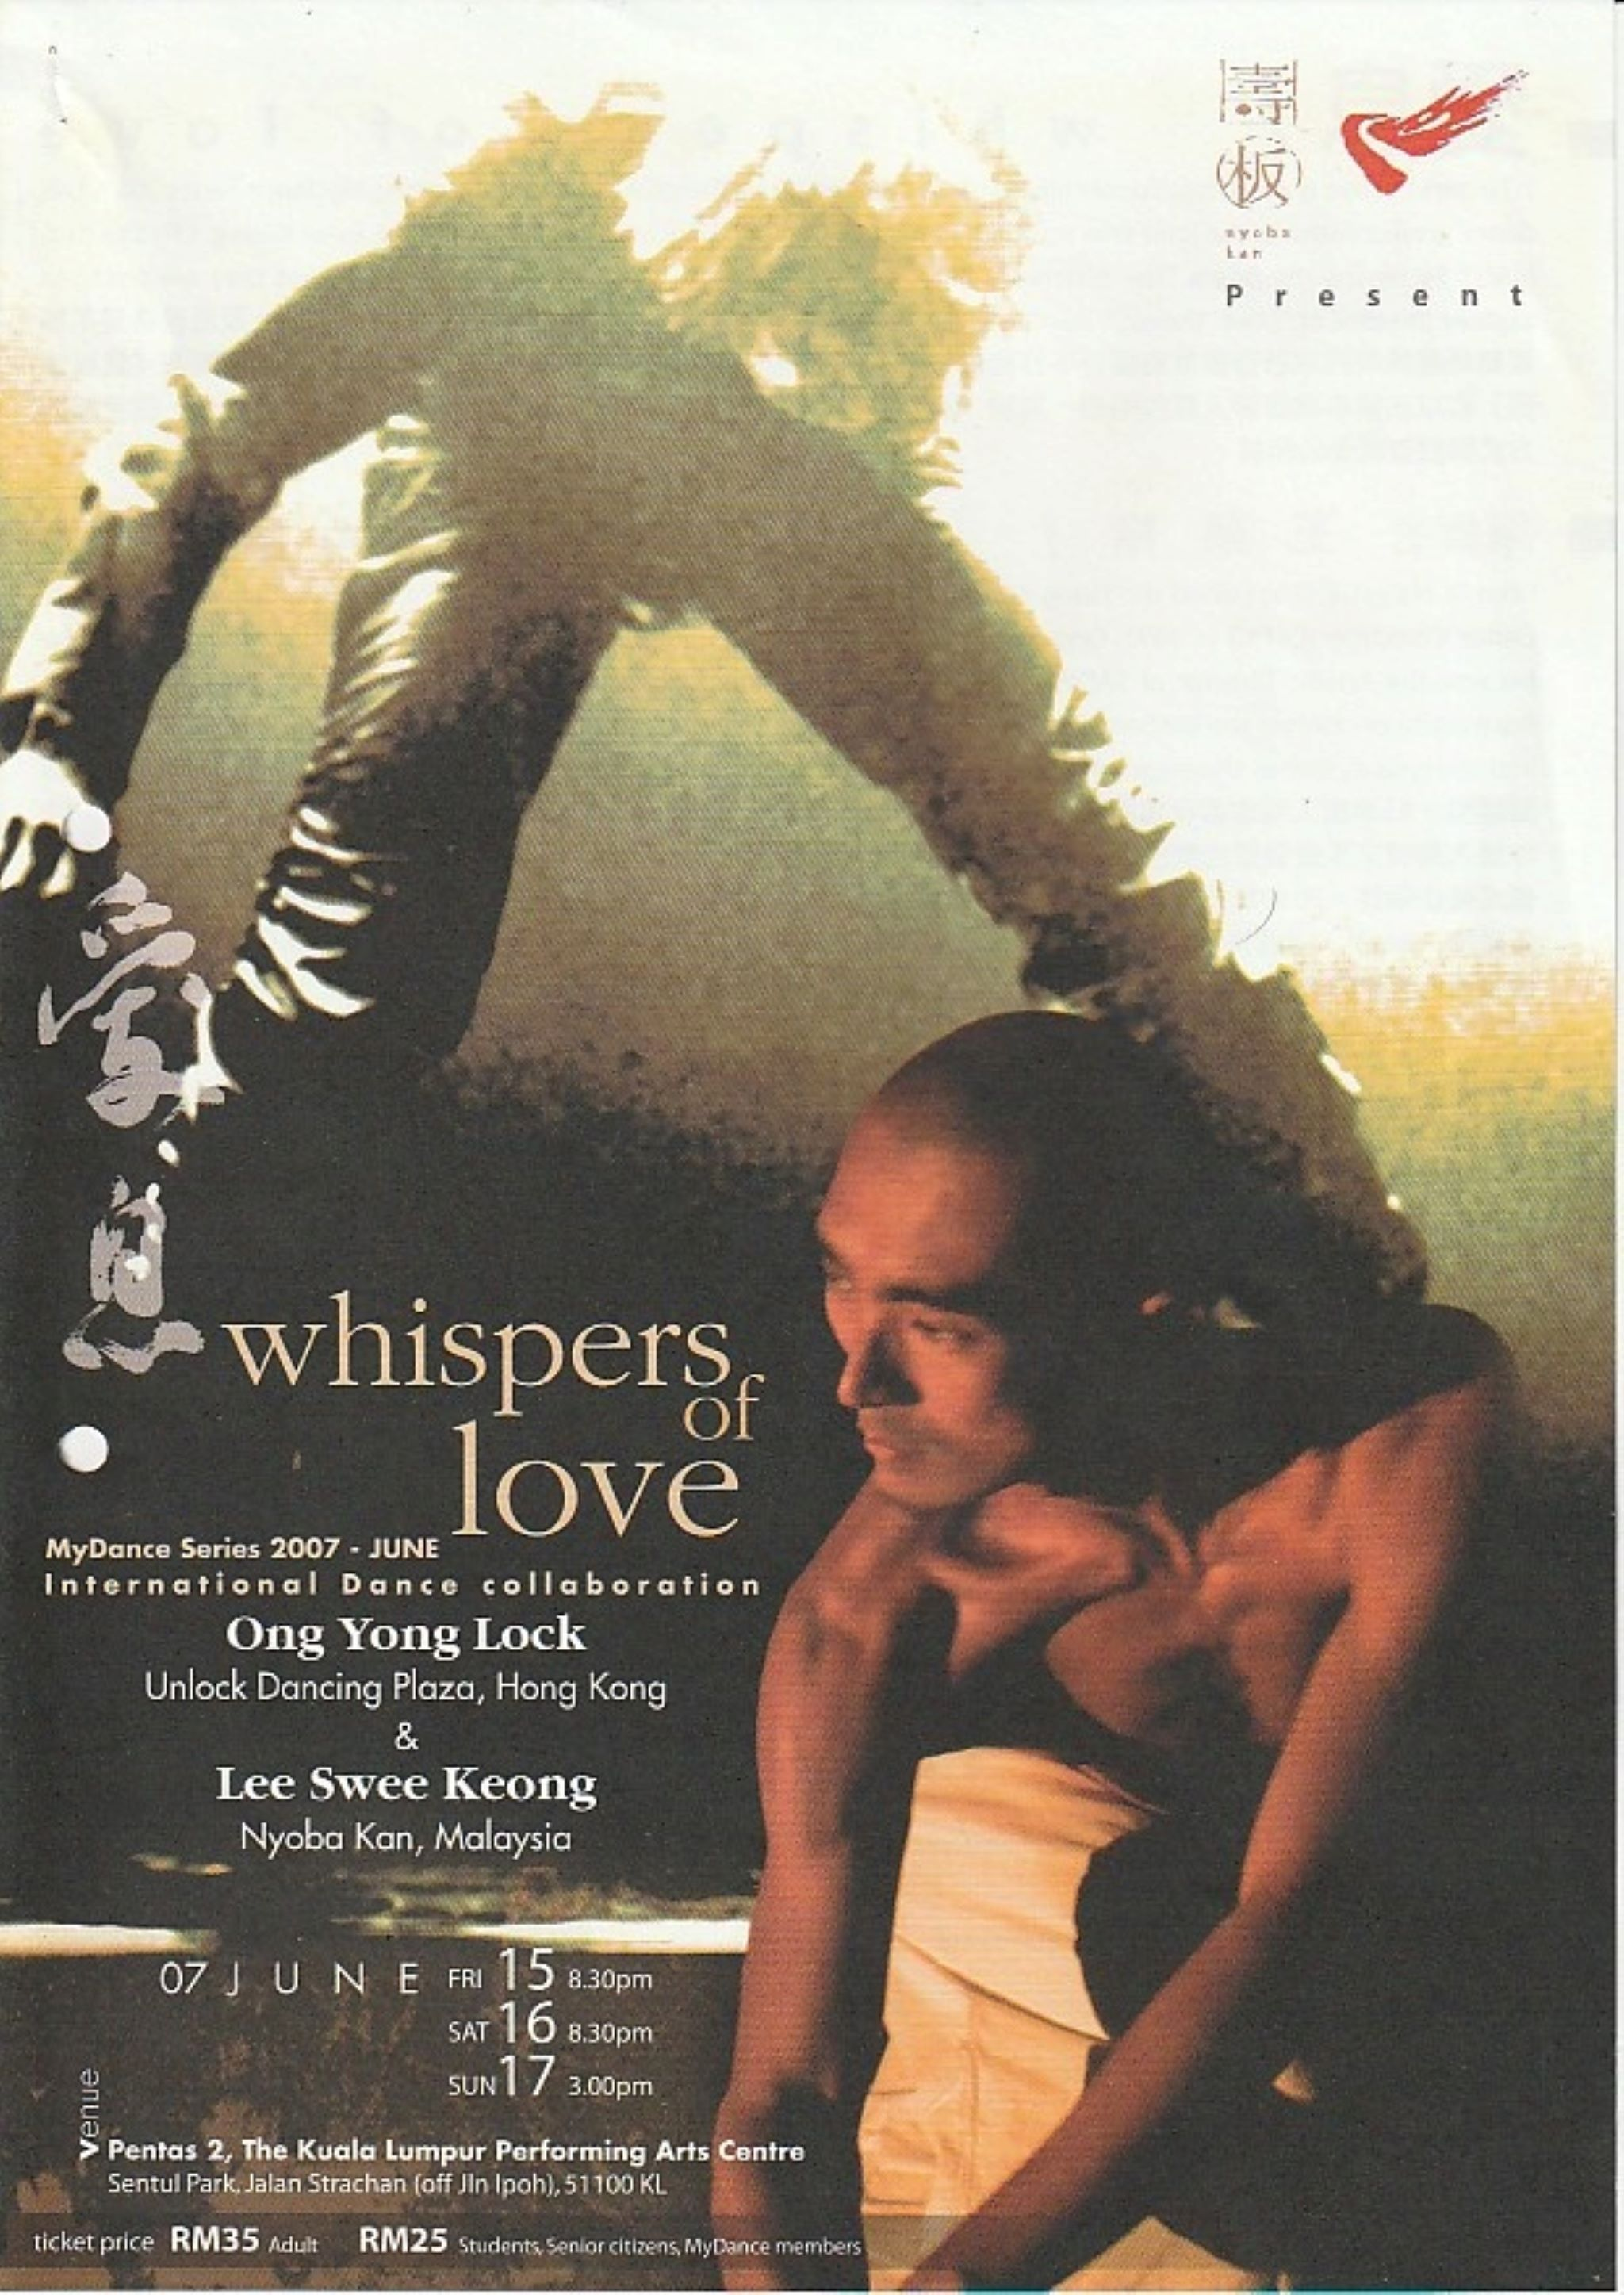 2007 whispers of love Cover